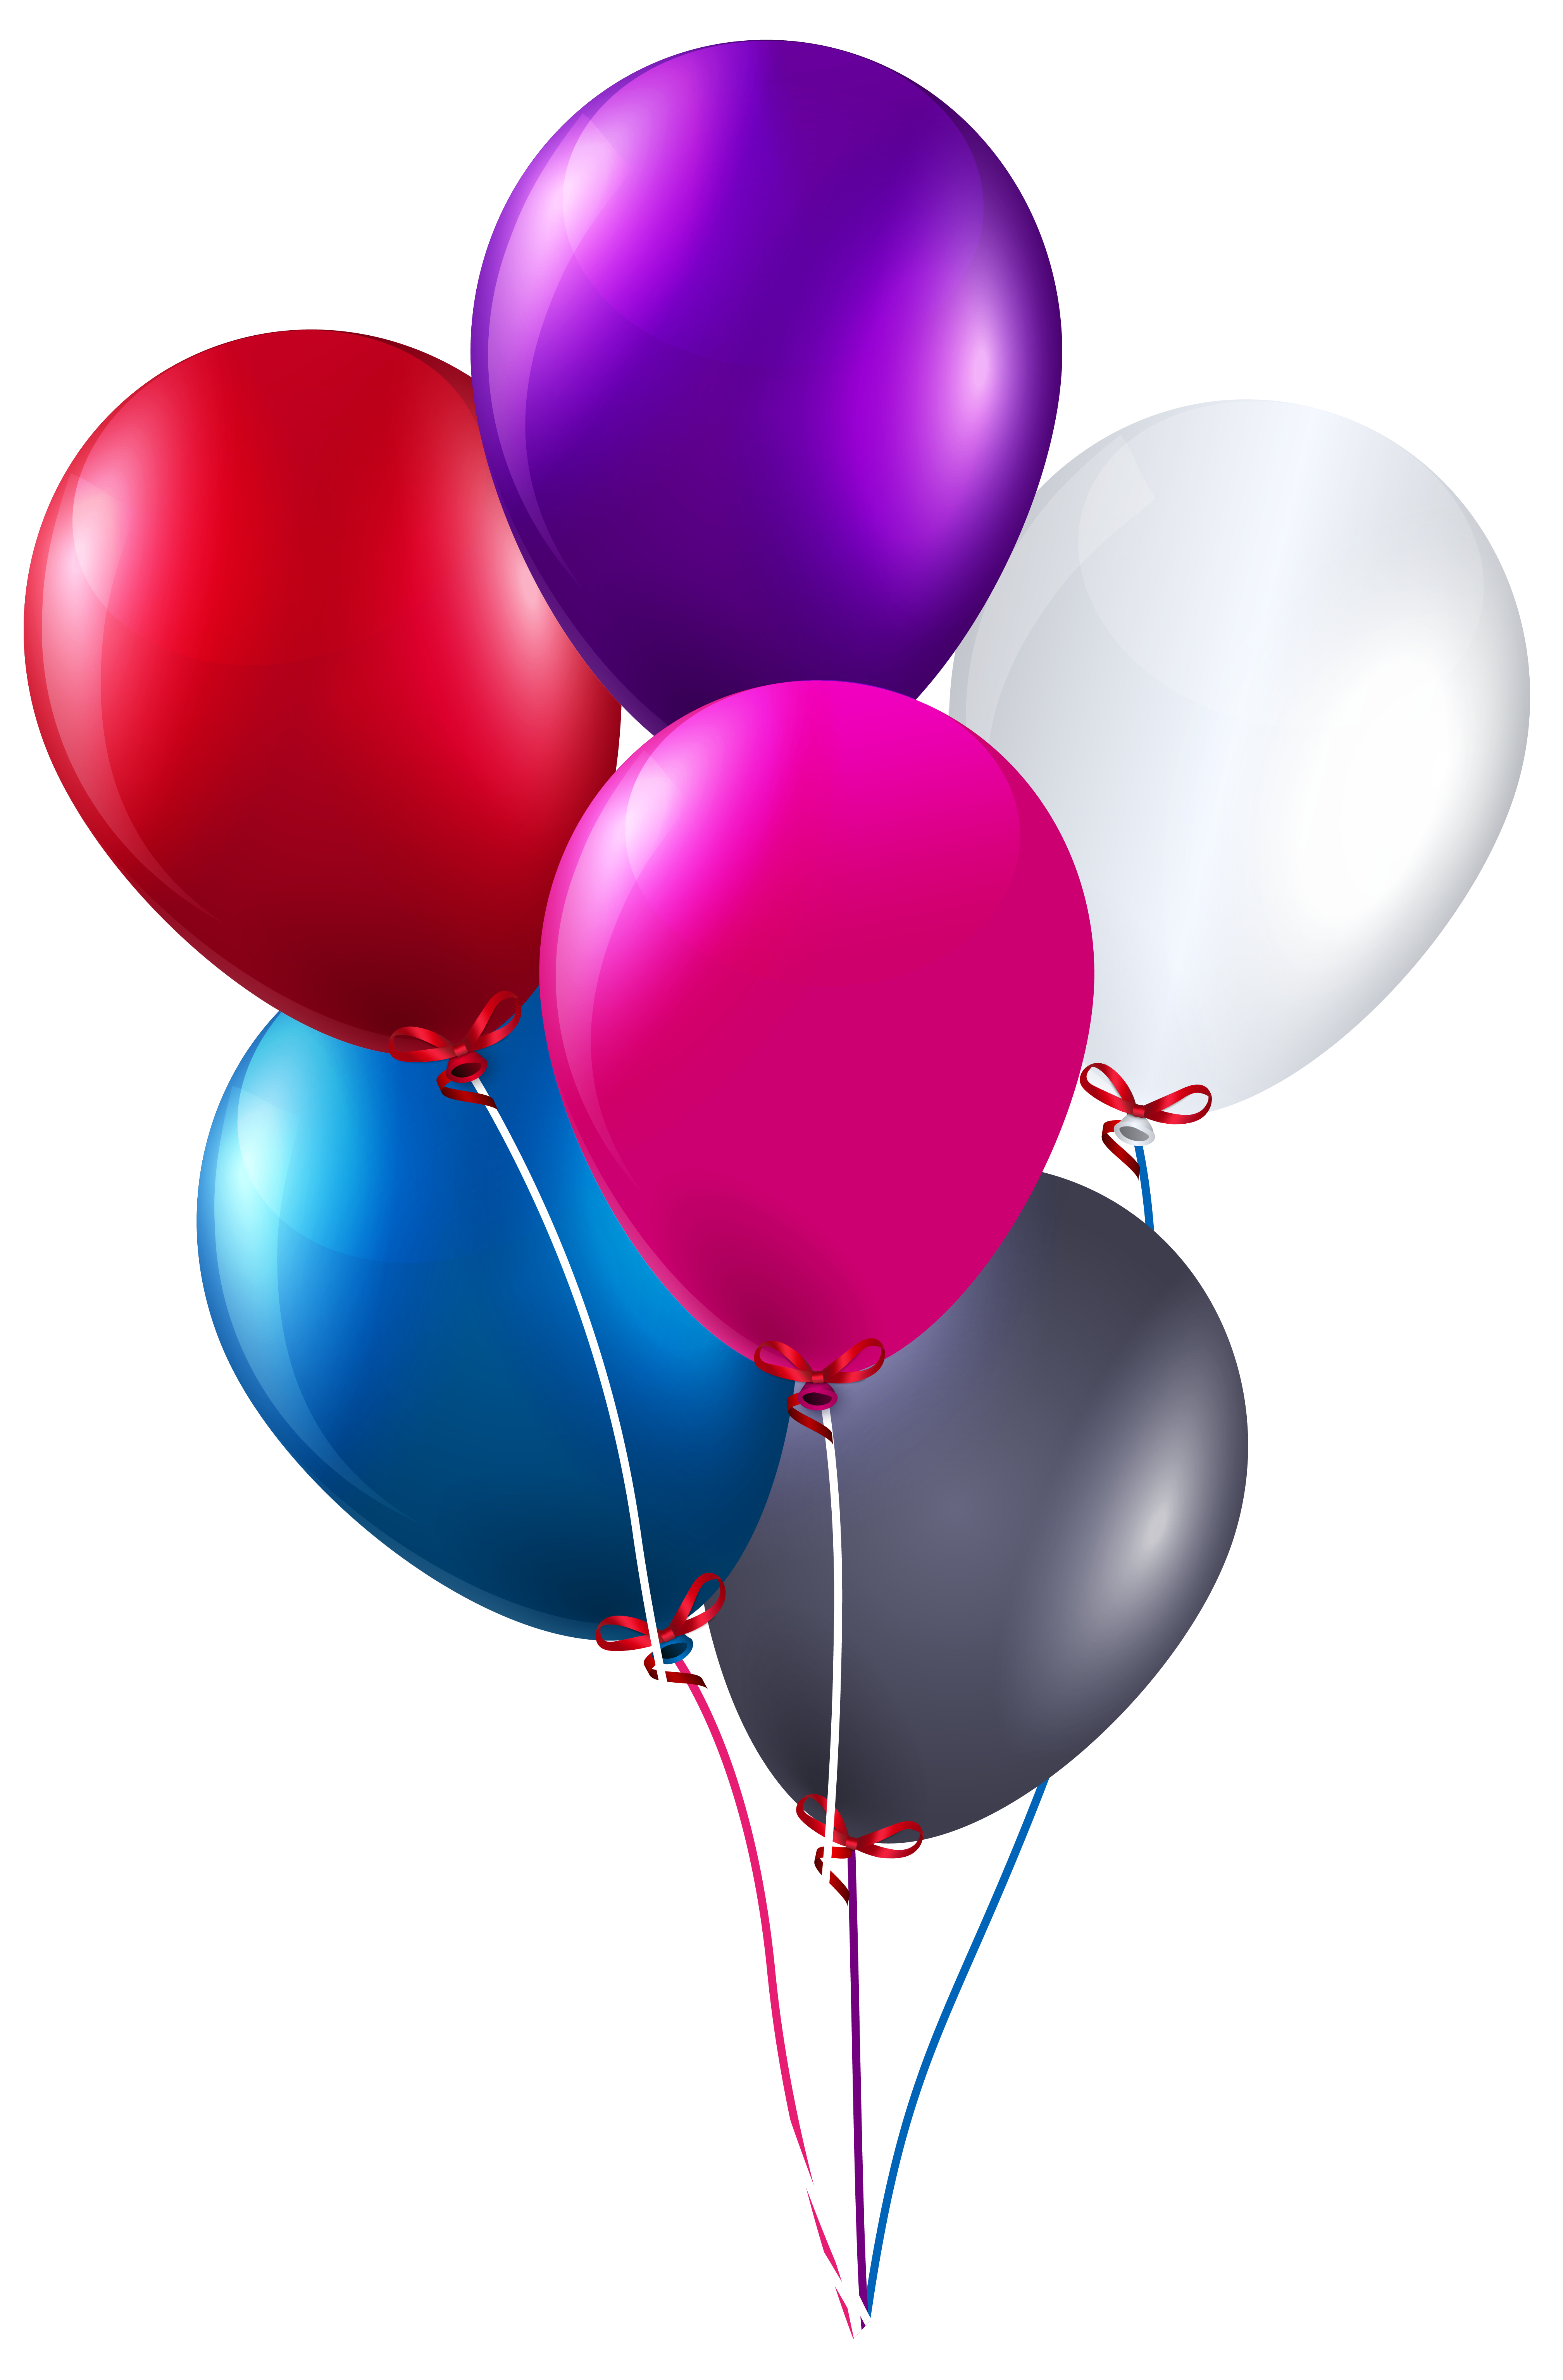 Star balloons clipart vector black and white stock Colorful Bunch of Balloons PNG Clipart Image | Gallery Yopriceville ... vector black and white stock